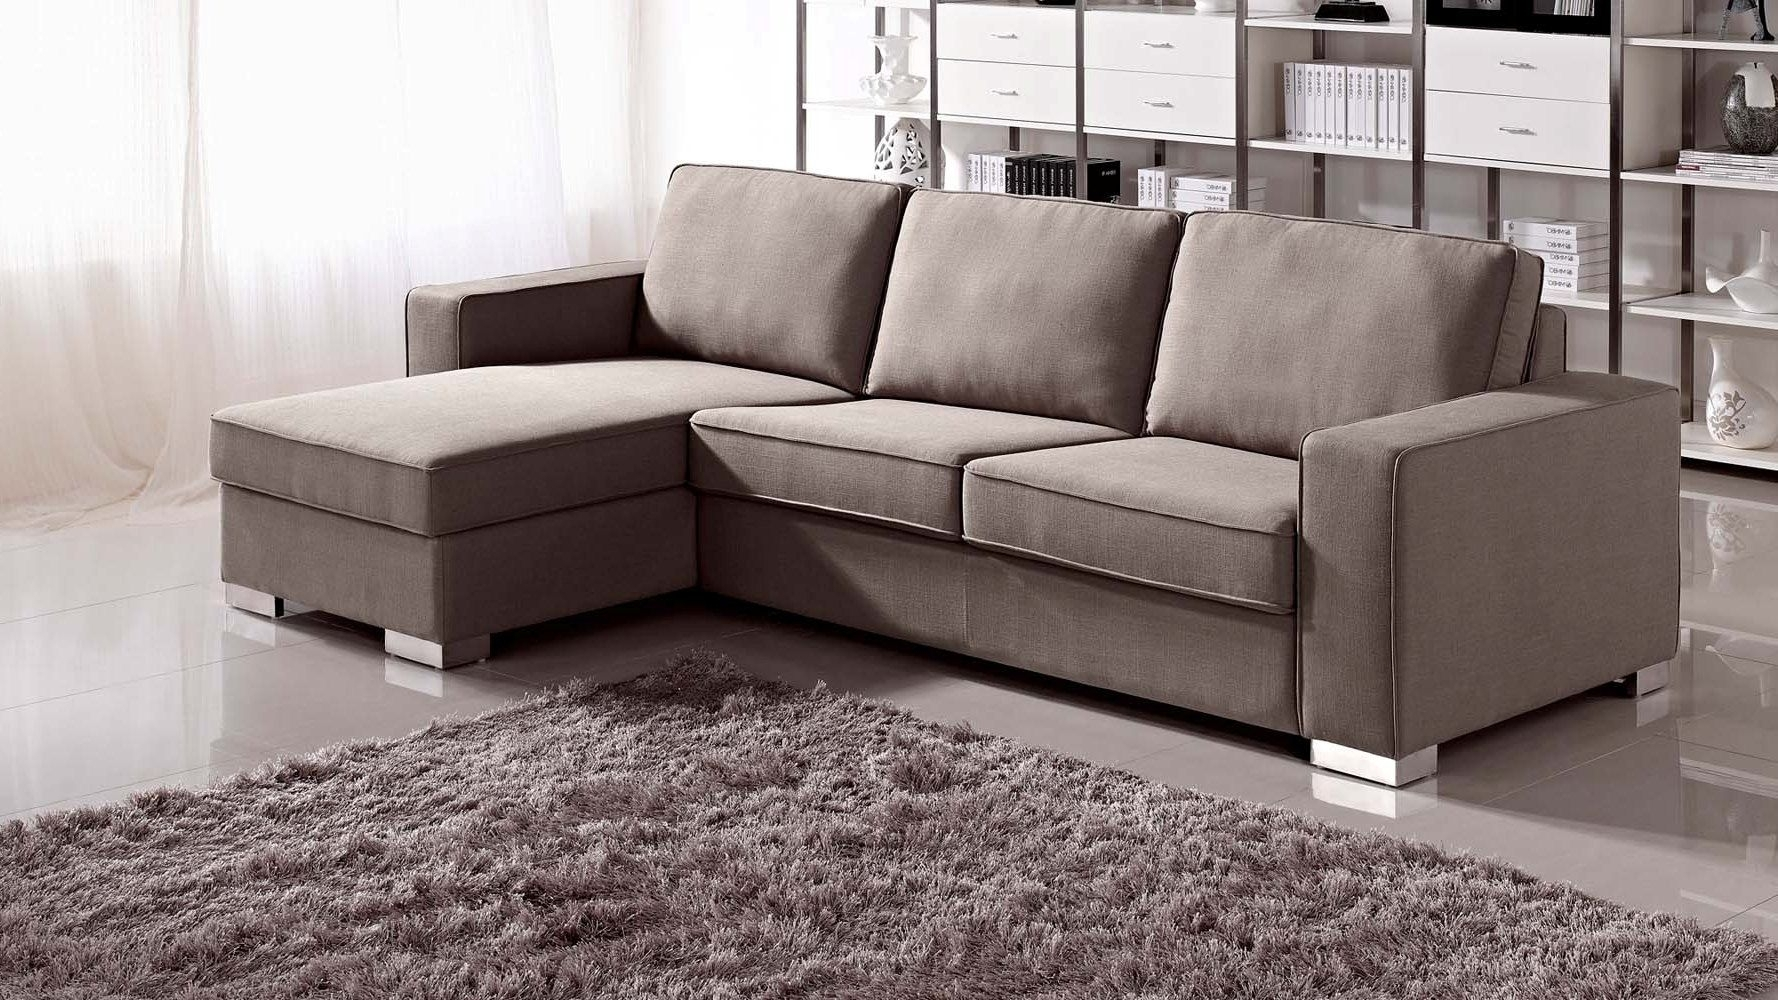 Sectional Sofa With Sleeper And Chaise | Http://ml2r | Pinterest Intended For Adjustable Sectional Sofas With Queen Bed (View 2 of 10)